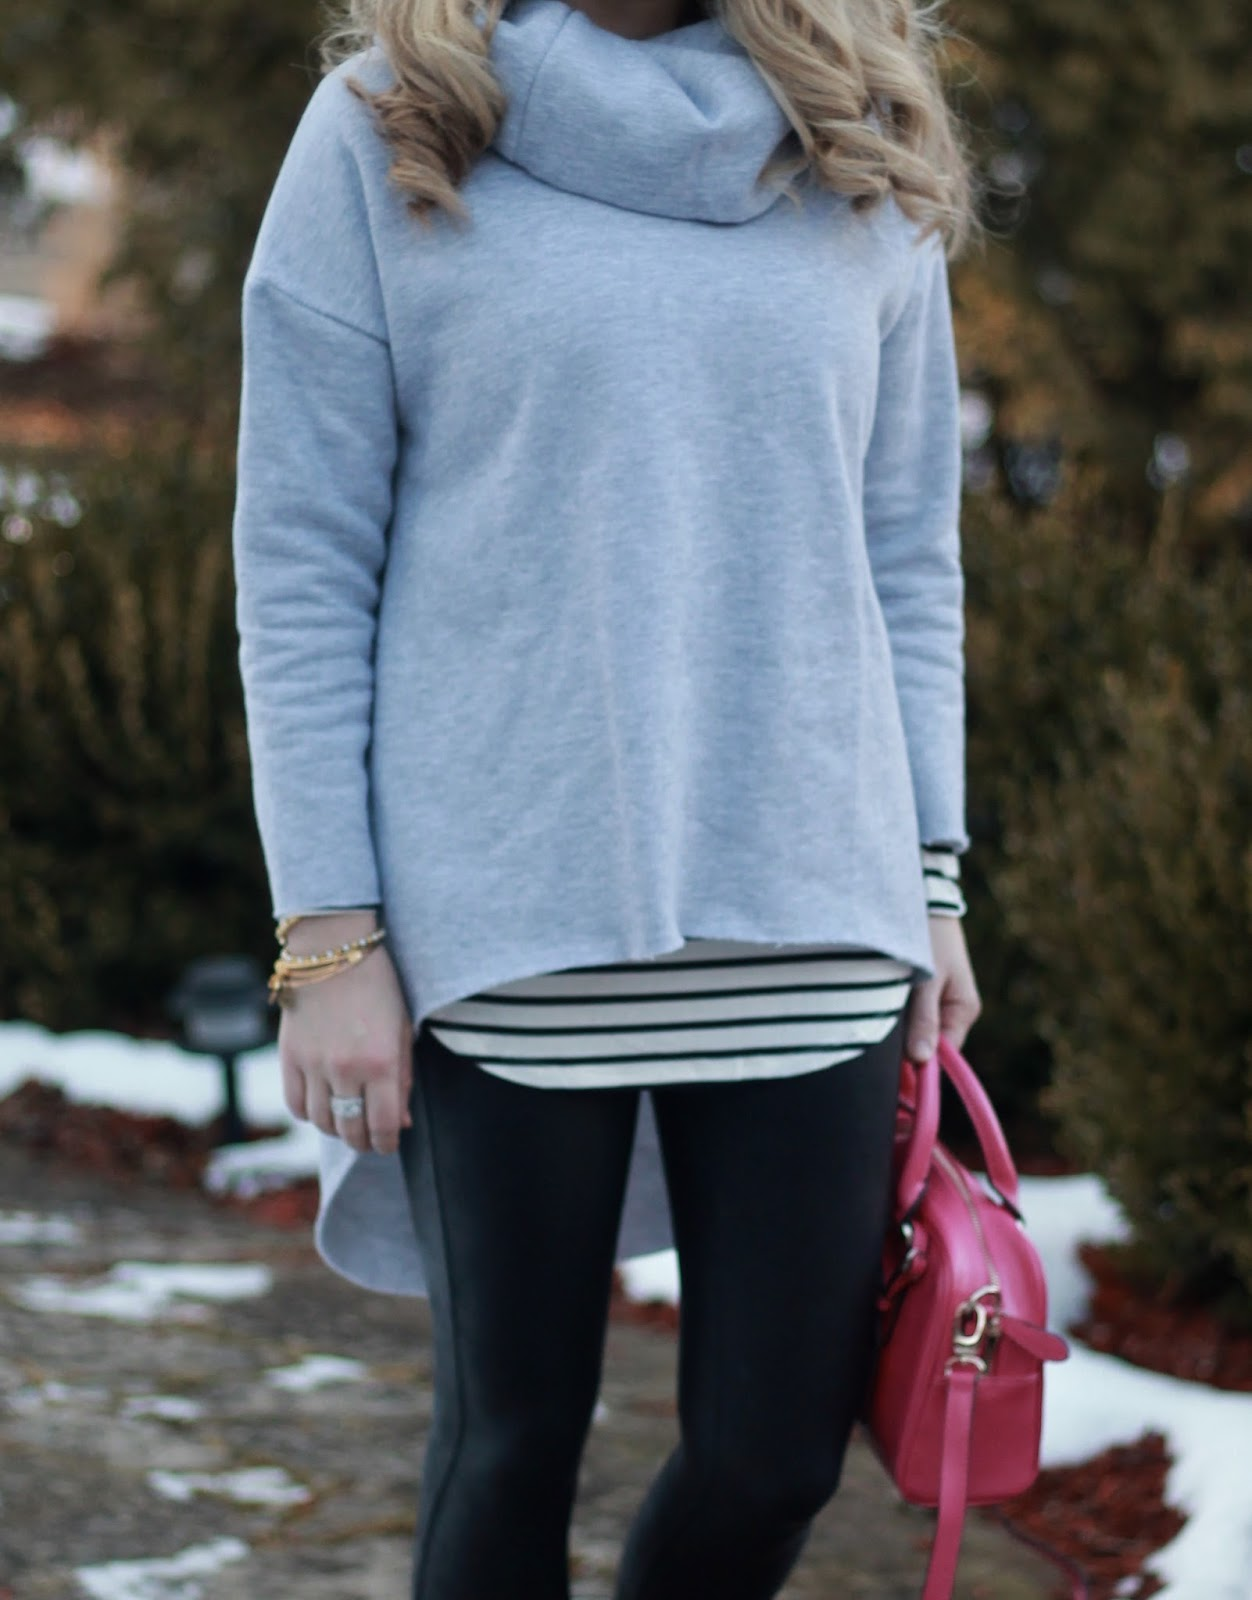 cowl neck tunic sweatshirt, striped tee, spanx leather leggings, tennis shoes